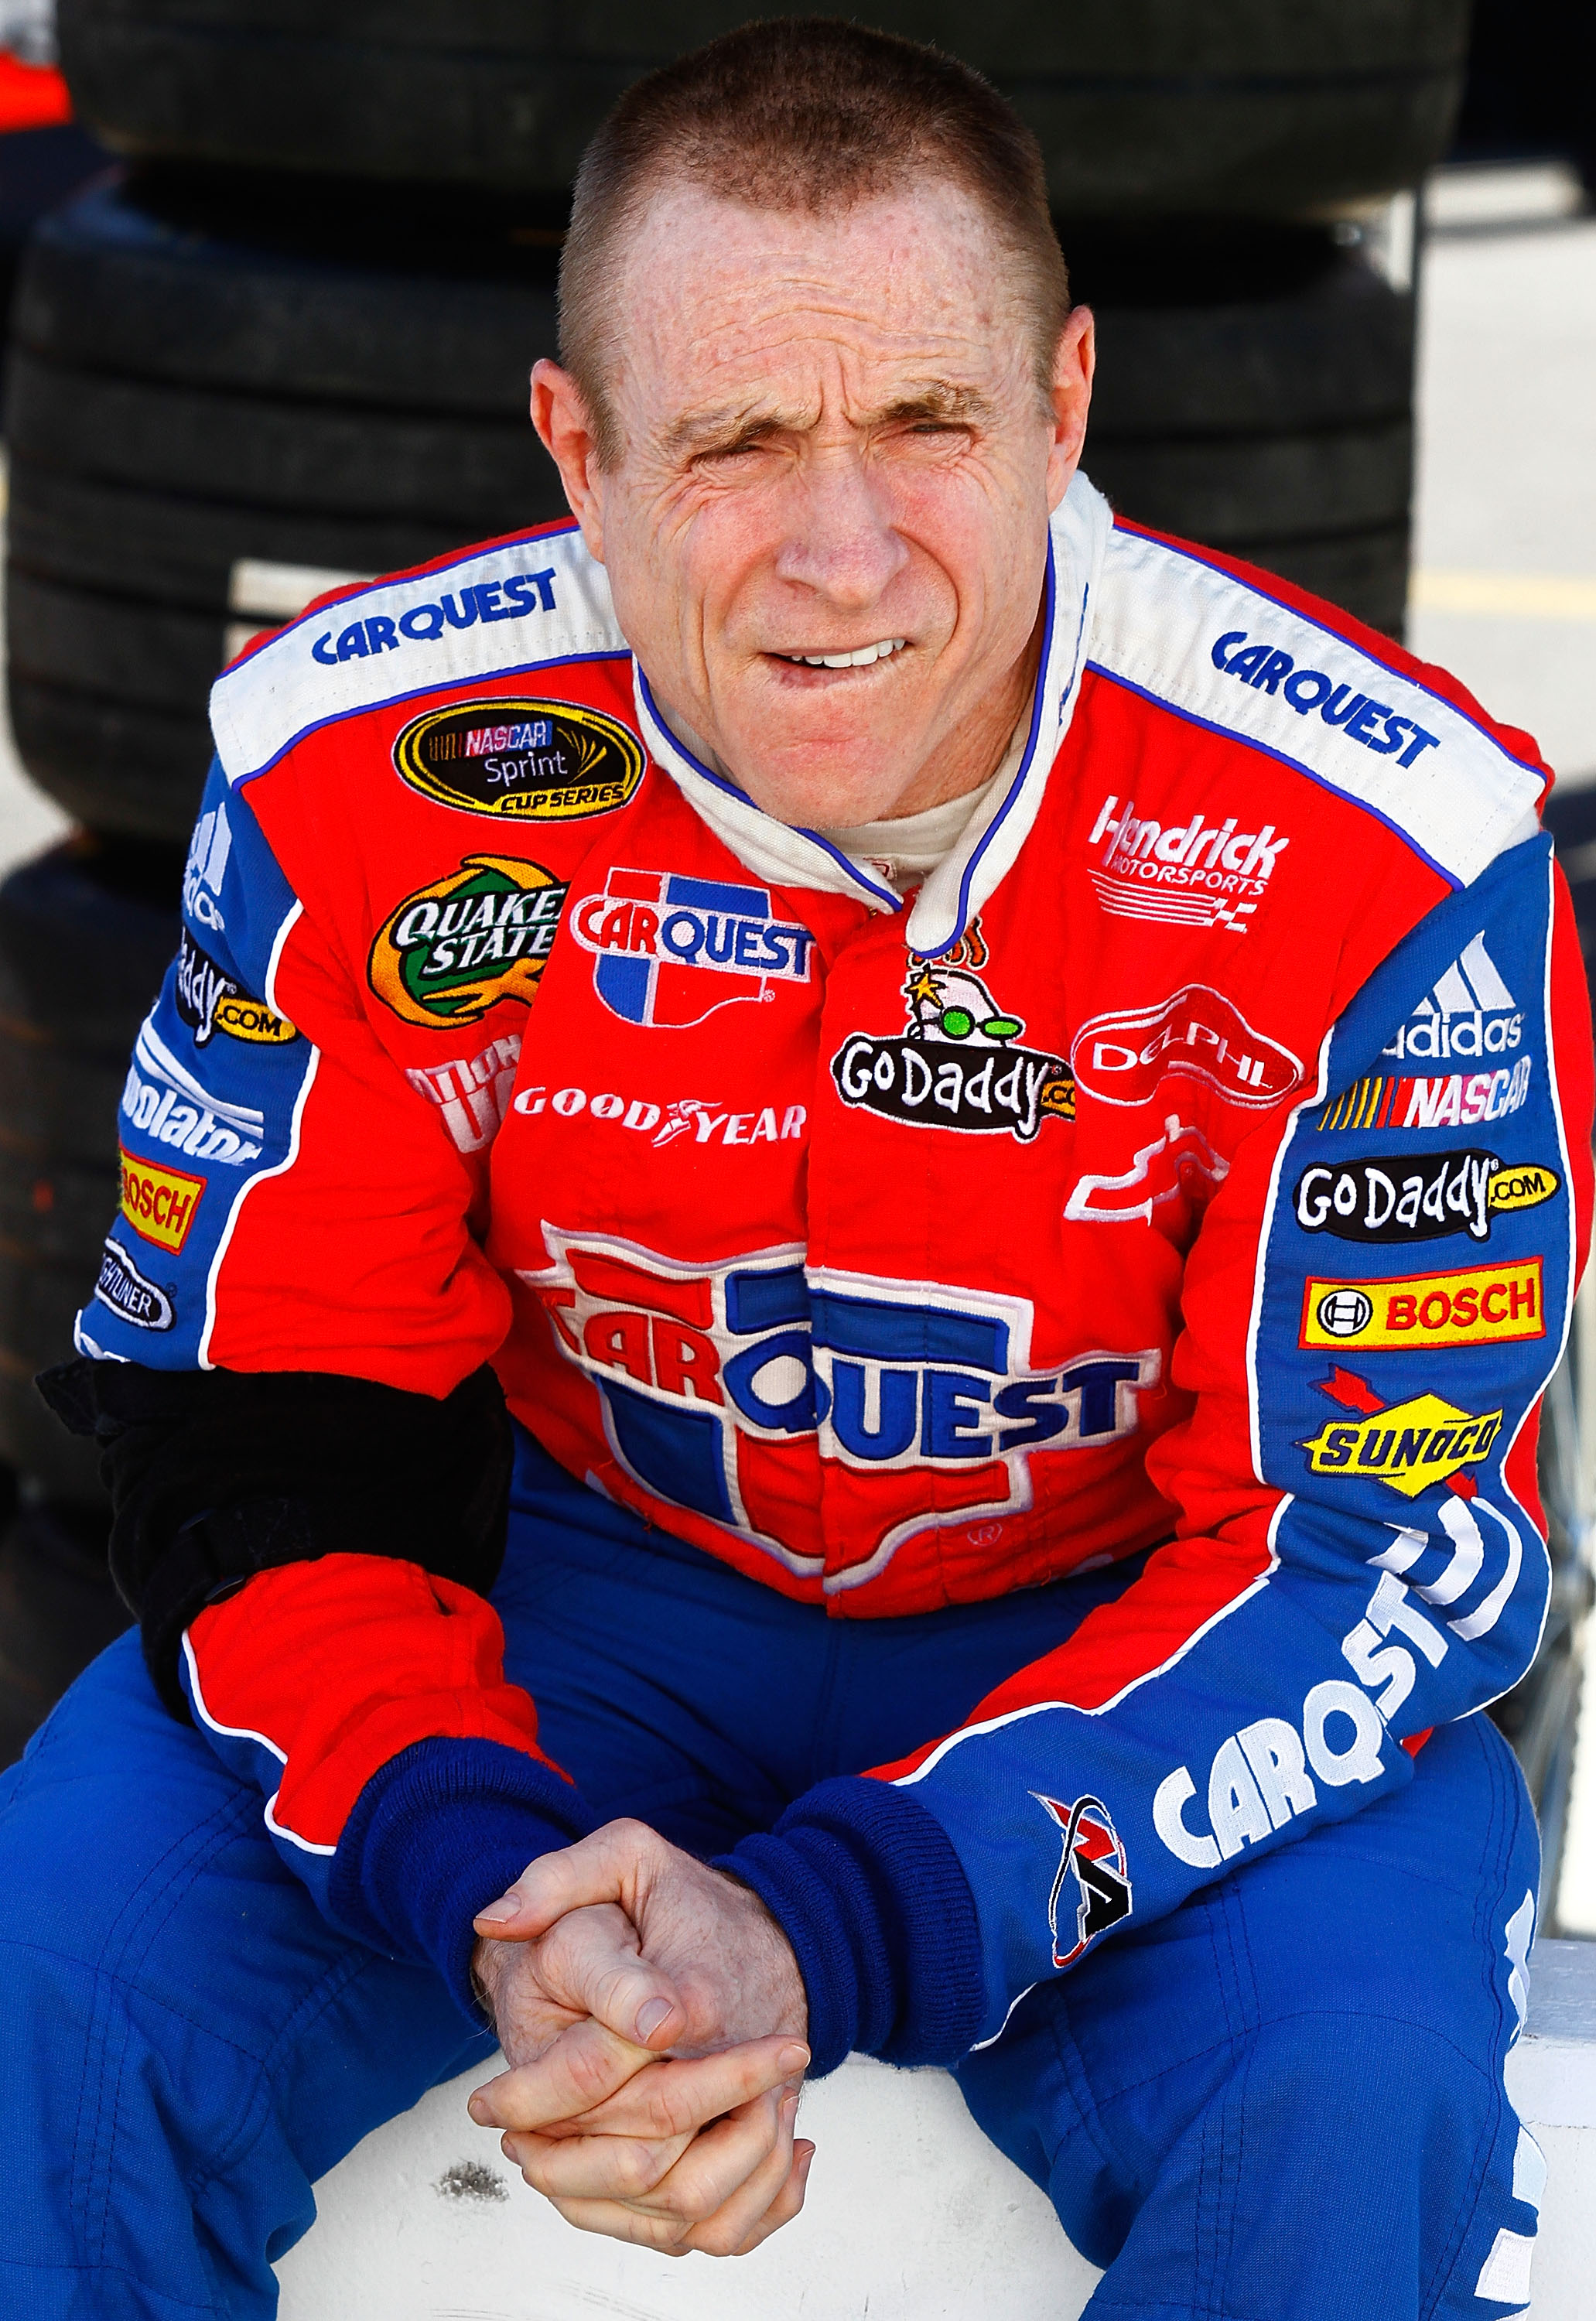 BRISTOL, TN - AUGUST 20:  Mark Martin, driver of the #5 CARQUEST Auto Parts Chevrolet, sits on pit wall during qualifying for the NASCAR Sprint Cup Series IRWIN Tools Night Race at Bristol Motor Speedway on August 20, 2010 in Bristol, Tennessee.  (Photo b